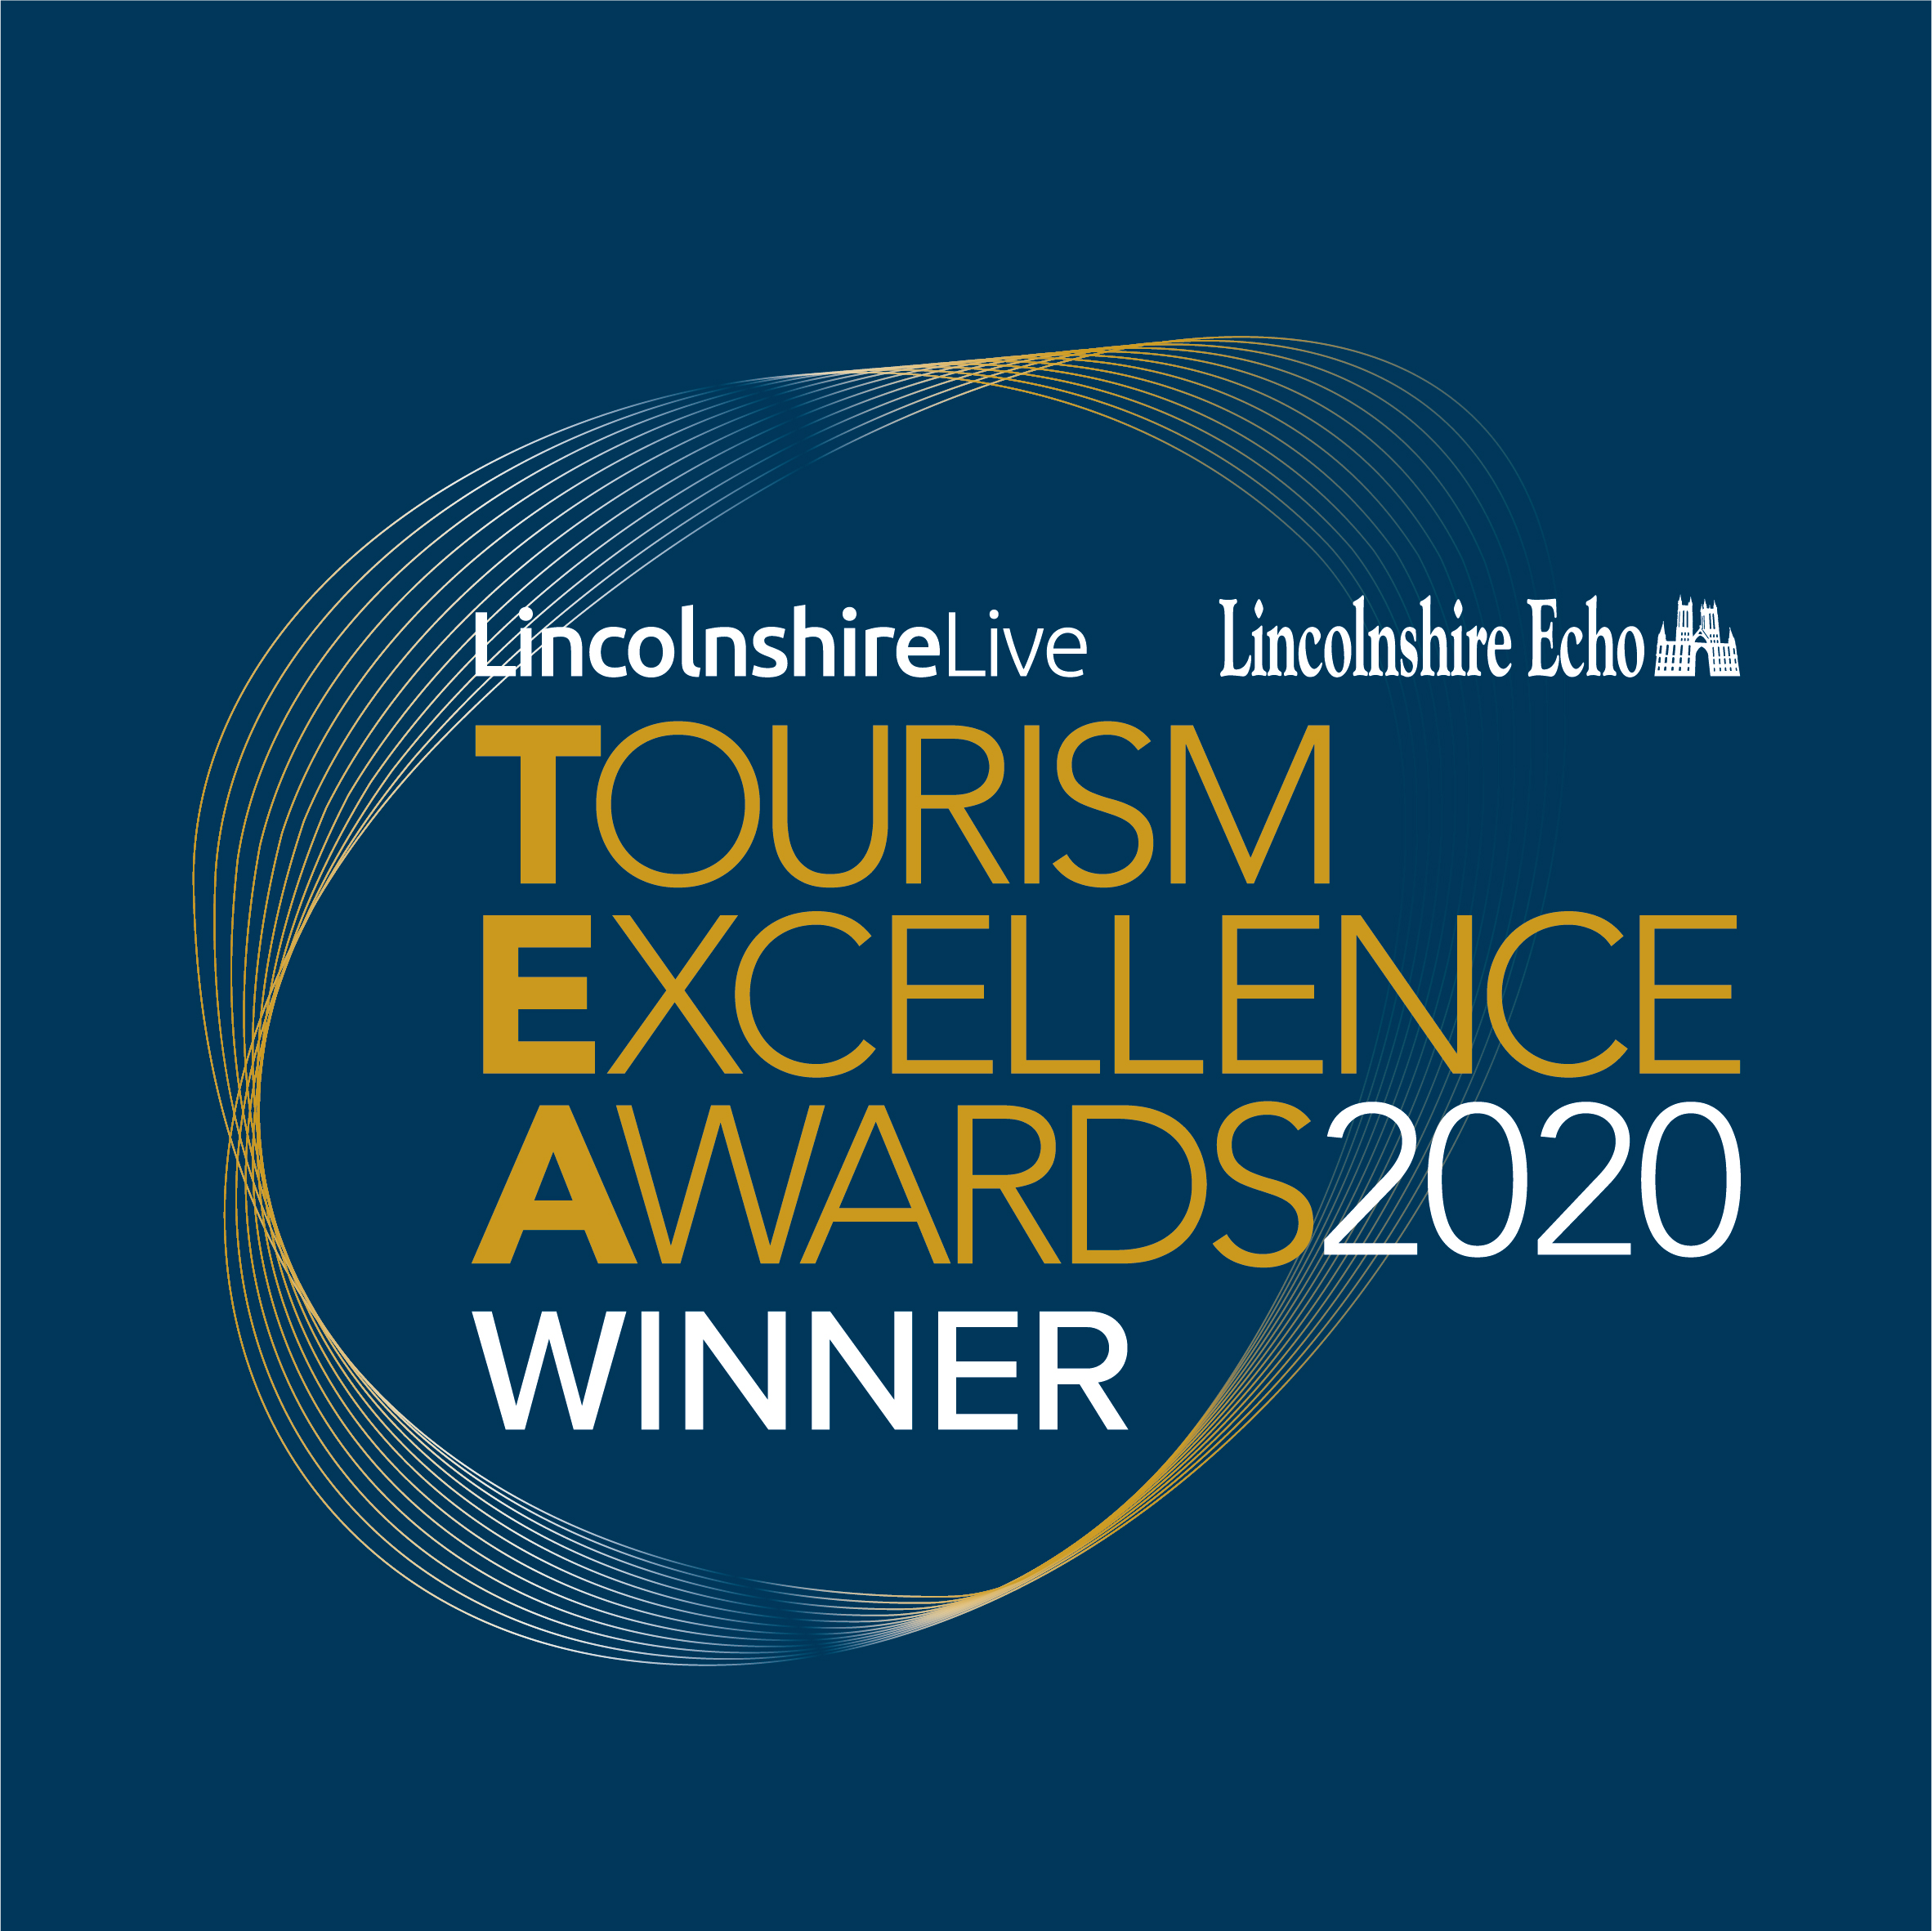 Tourism Excellence Award 2020